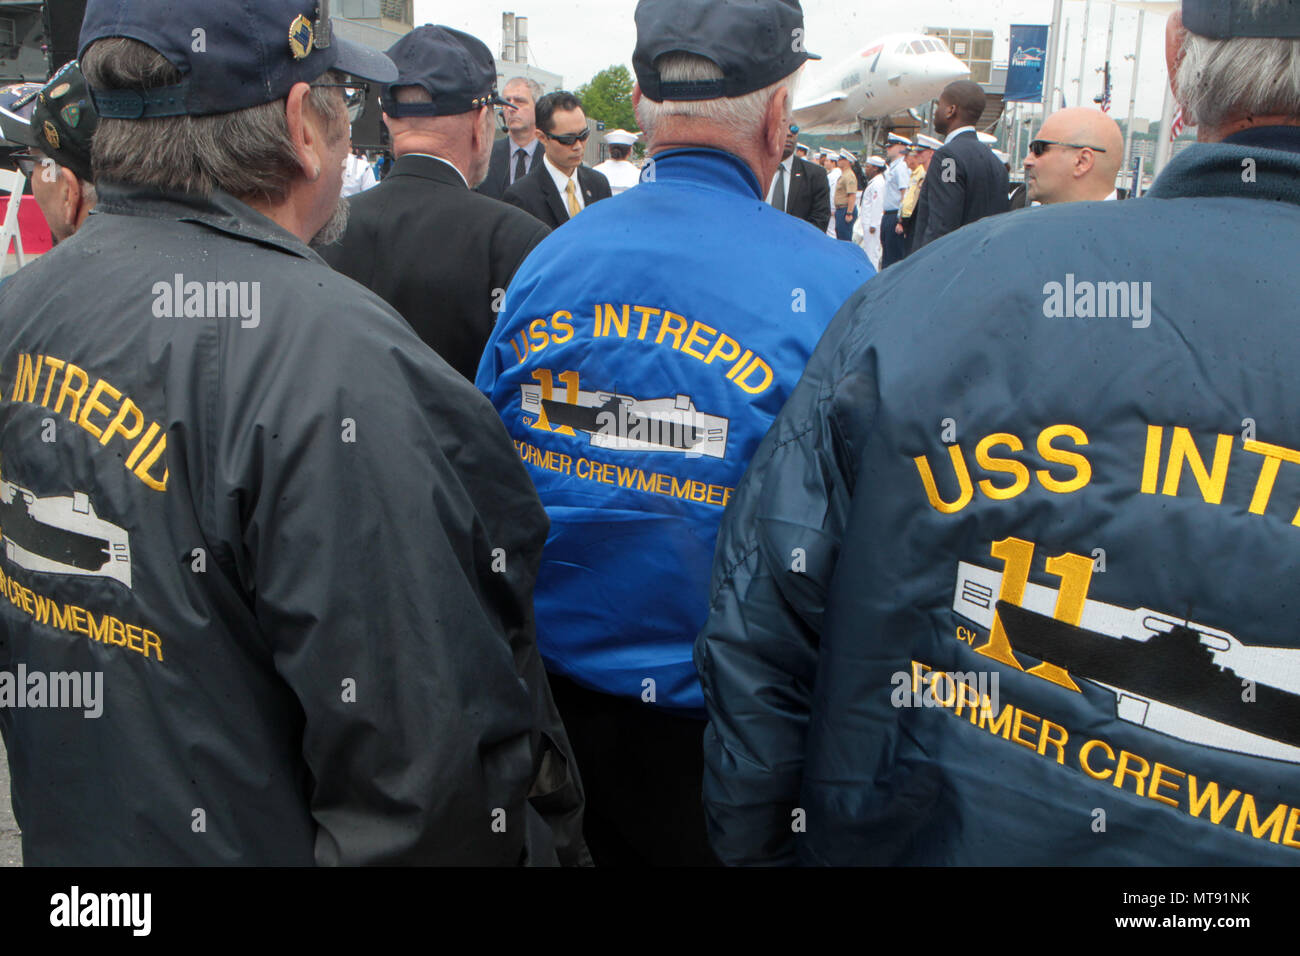 New York, NY, USA. 28th May, 2018. Former U.S Navy Sailors attend the 2018 Memorial Day Ceremony held aboard the U.S.S Intrepid Sea, Air, Space Museum Complex on May 28, 2018 in New York City. Credit: Mpi43/Media Punch/Alamy Live News - Stock Image